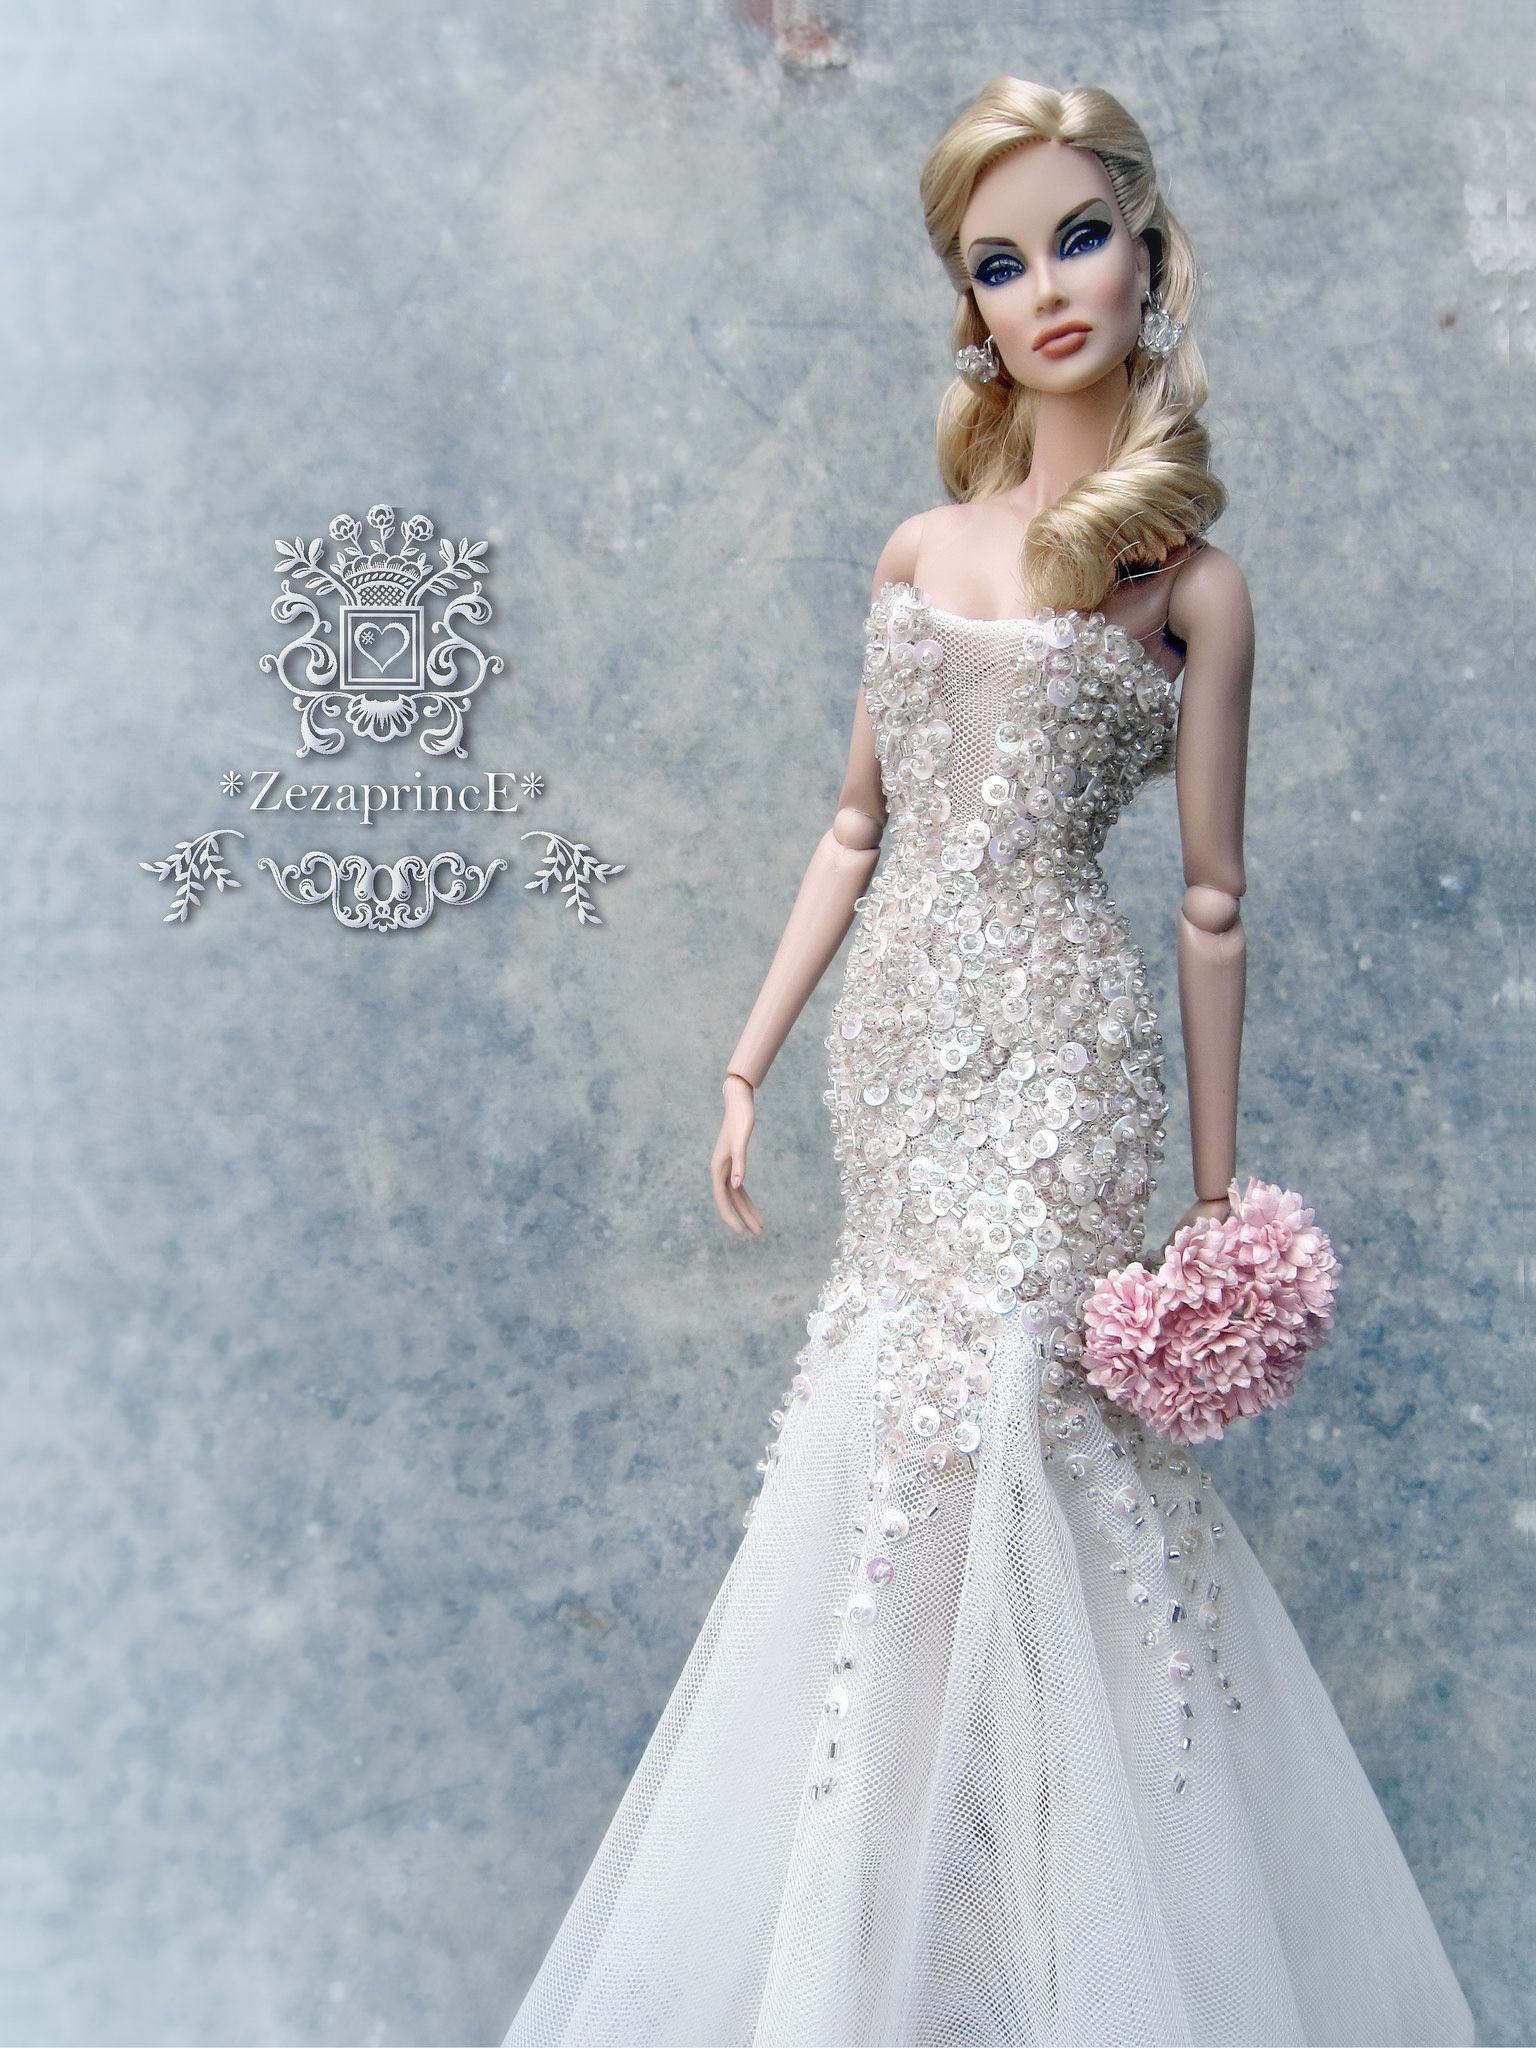 Pin de Ethel Sem en Wedding dresses for dolls. | Pinterest | Barbie ...